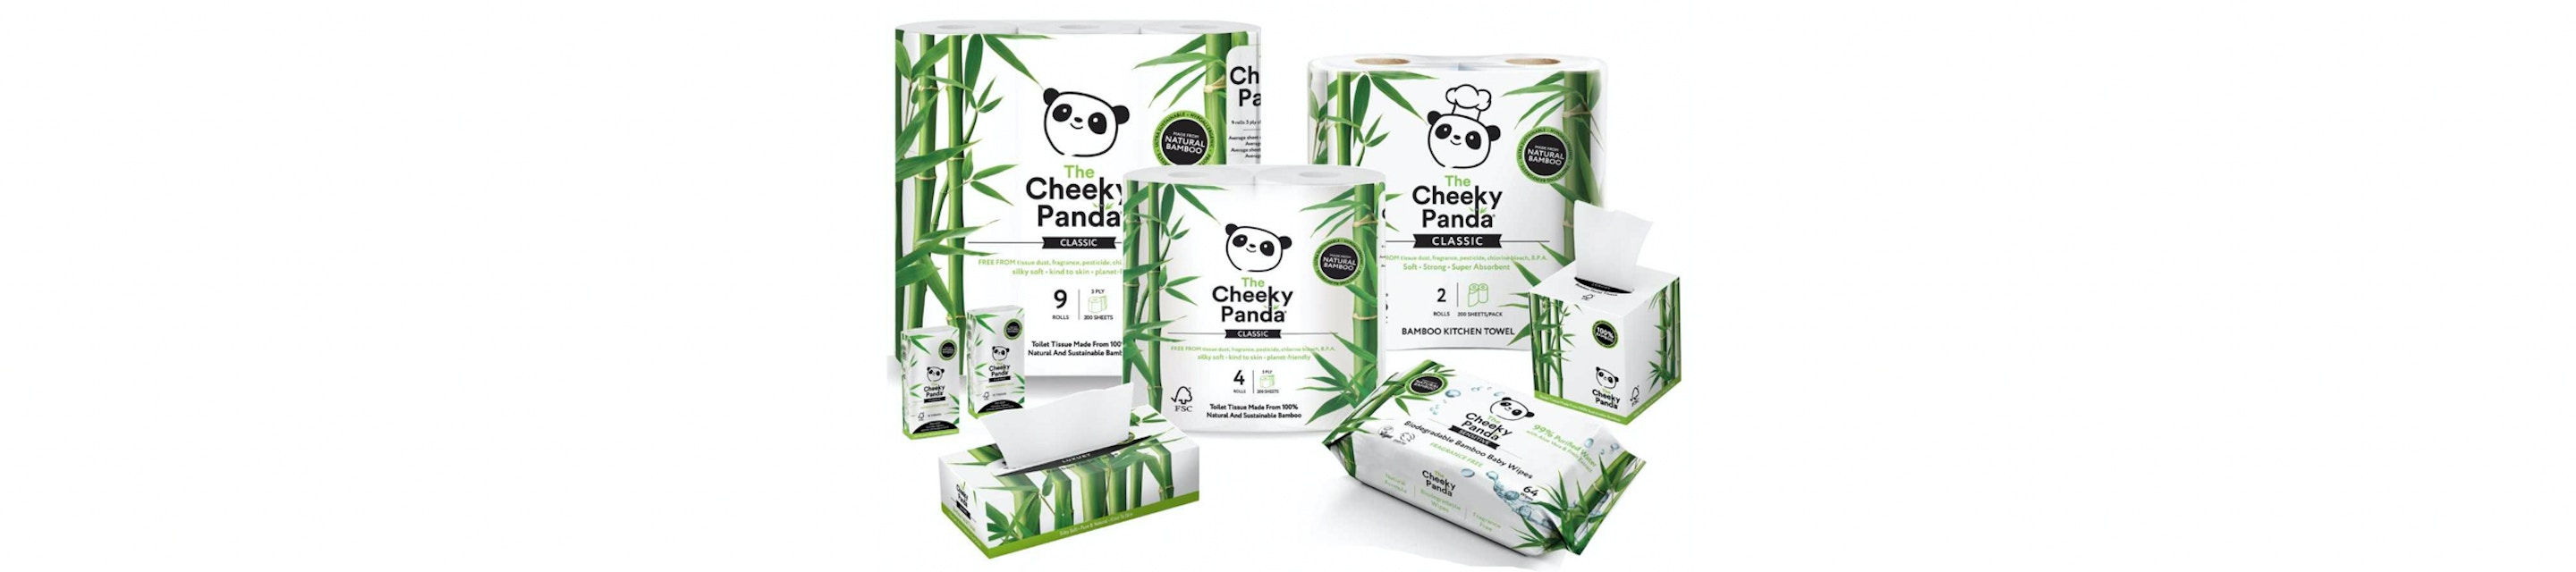 The Cheeky Panda hero image